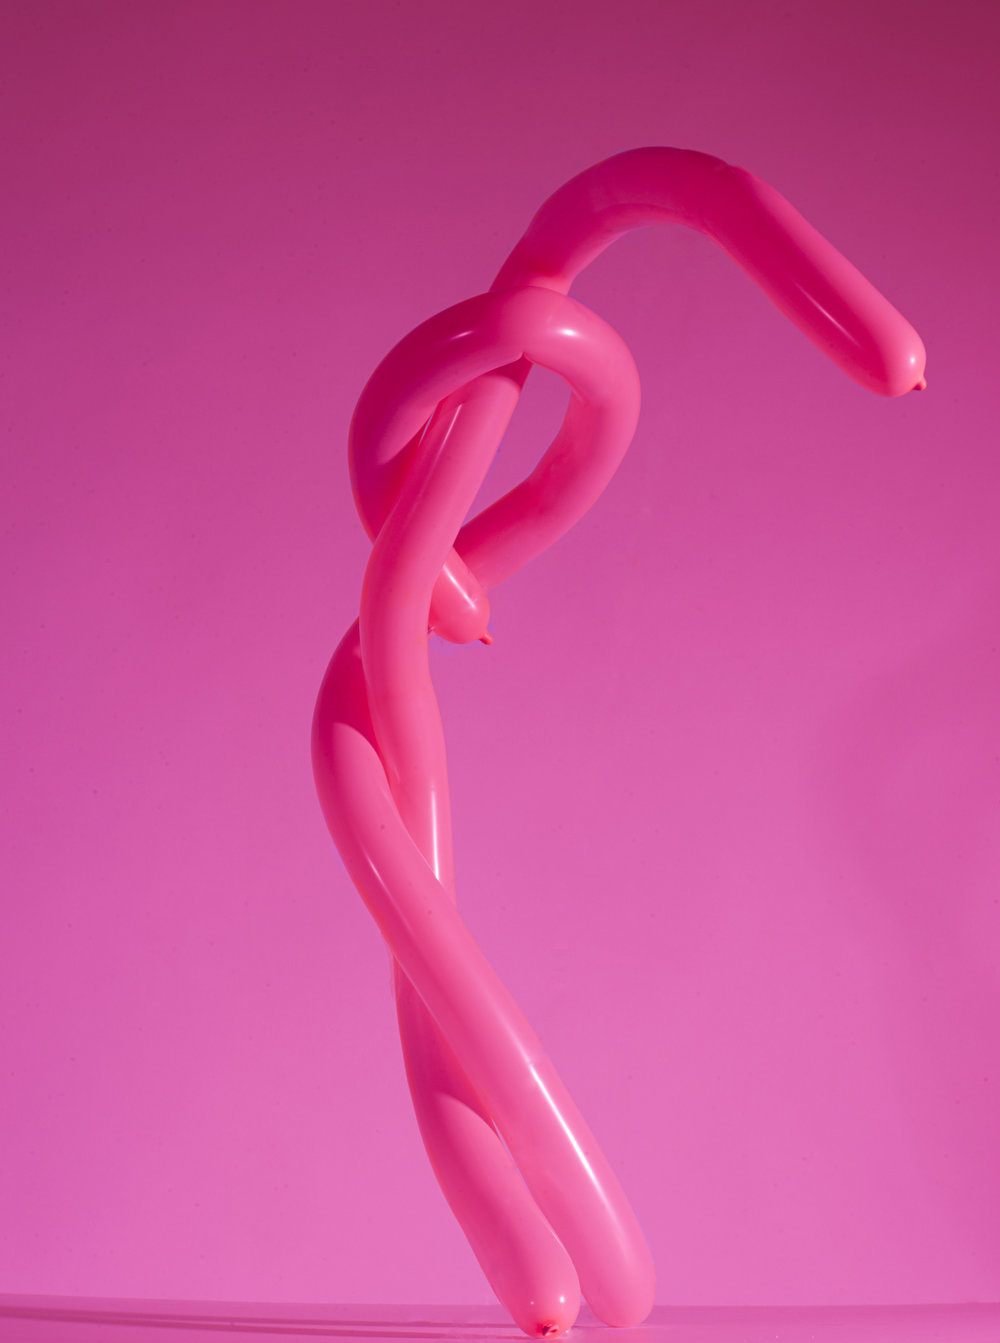 Sharma_Abhishek_shades of pink balloon sculptures 5.JPG